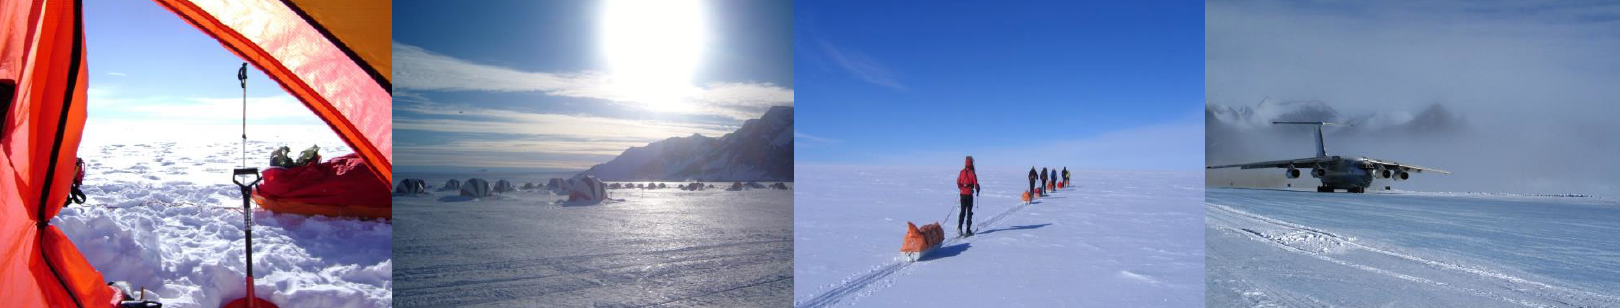 Modern day expedition to the South Pole